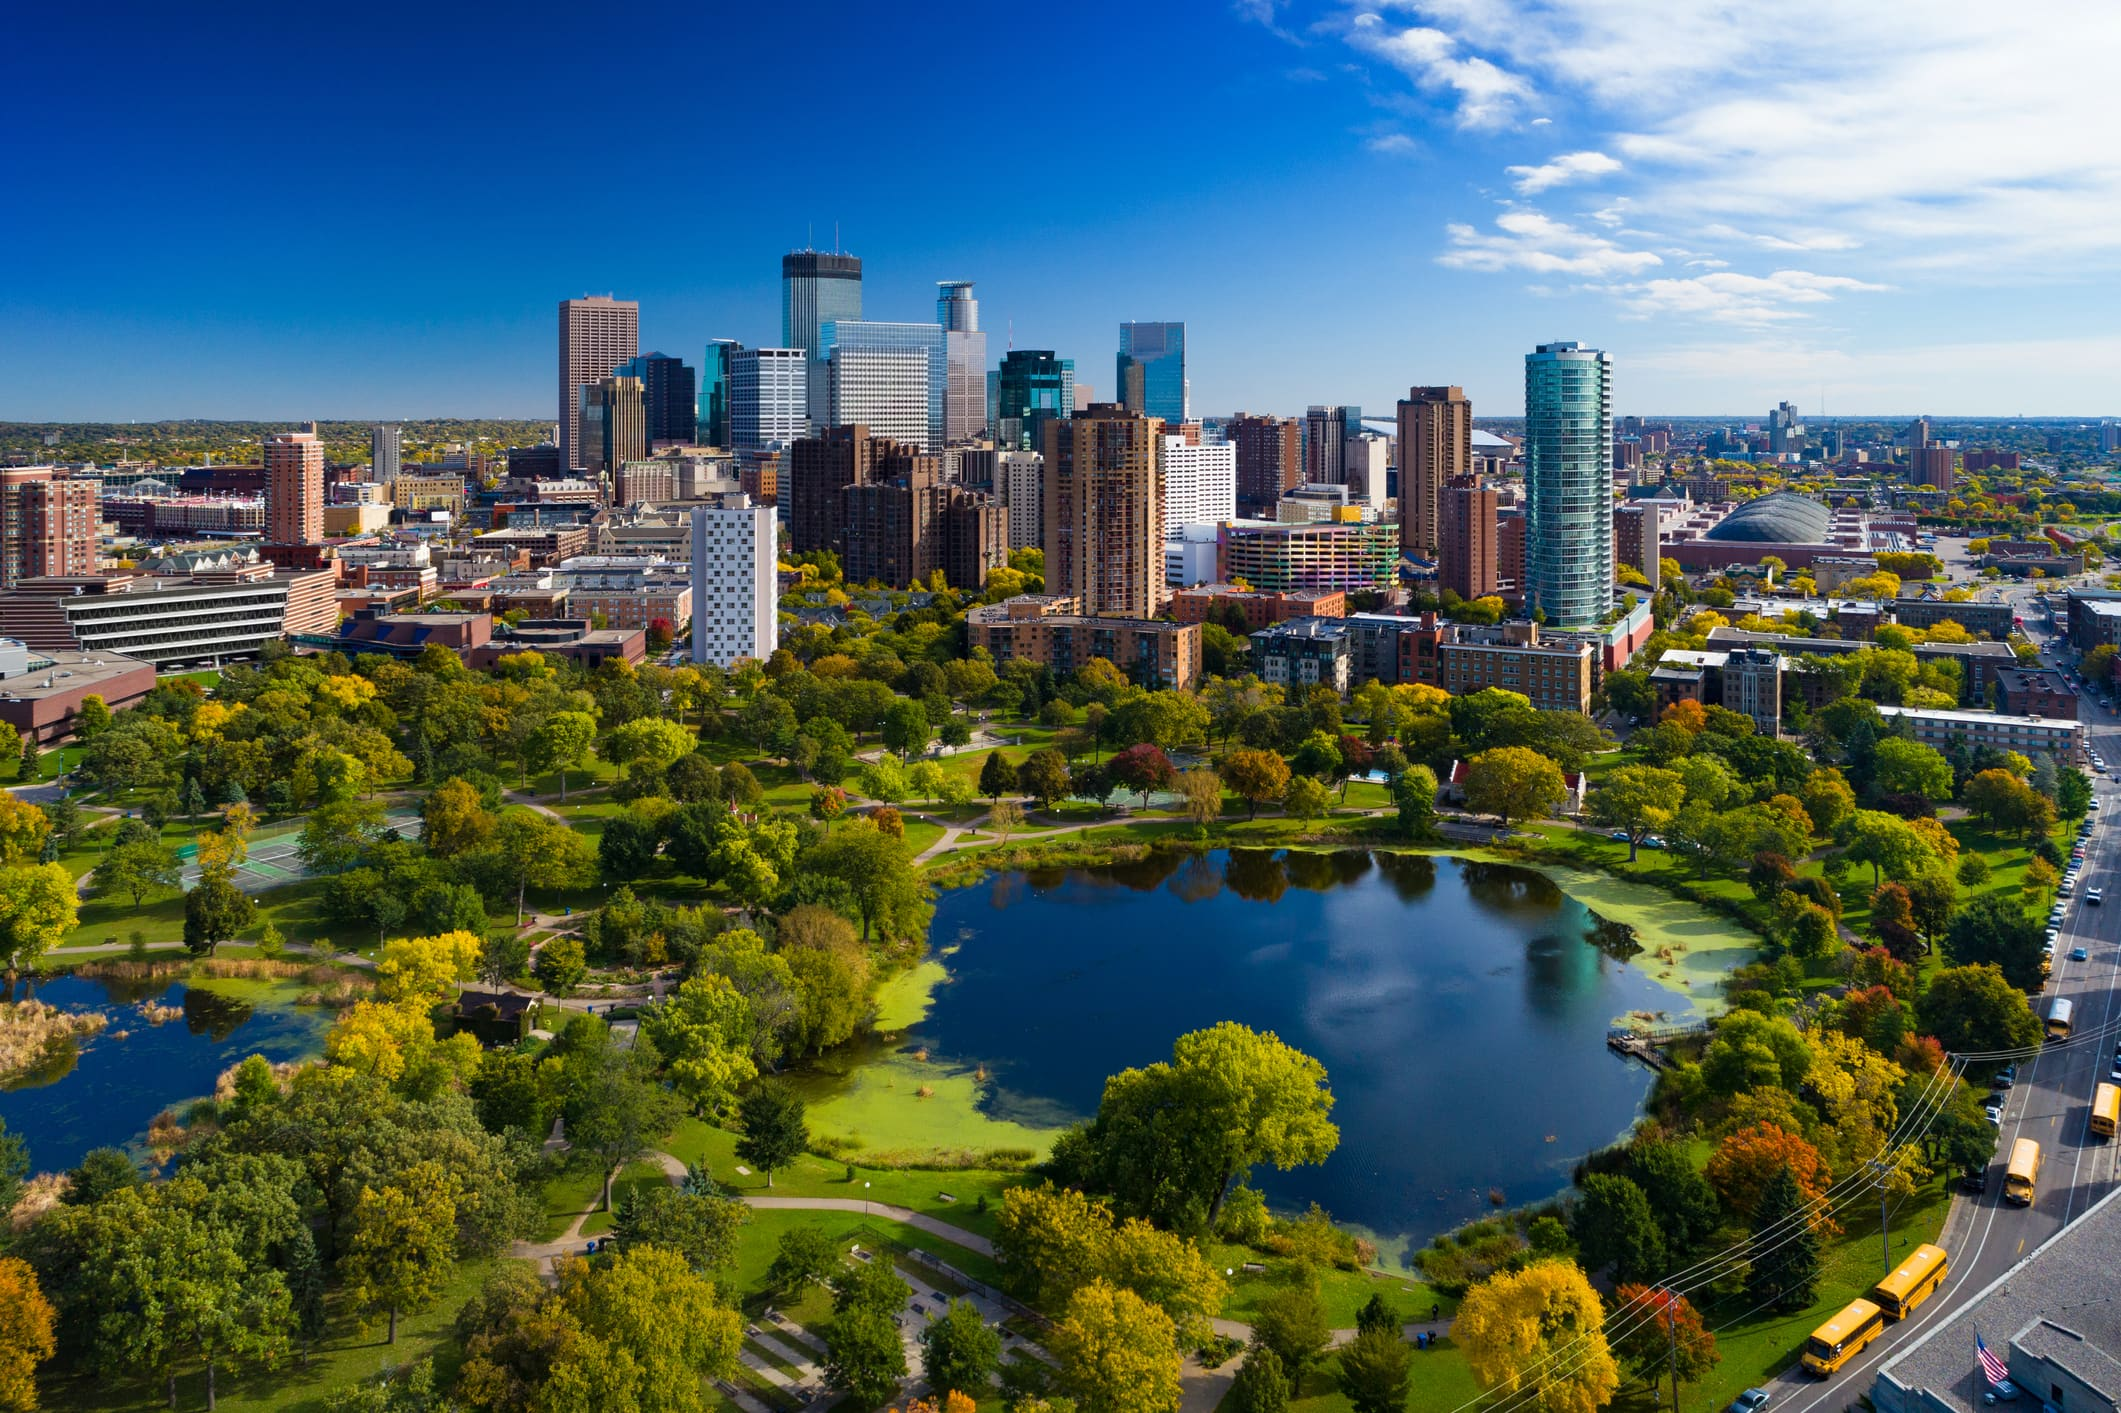 An aerial view of the downtown Minneapolis skyline and Loring Park.